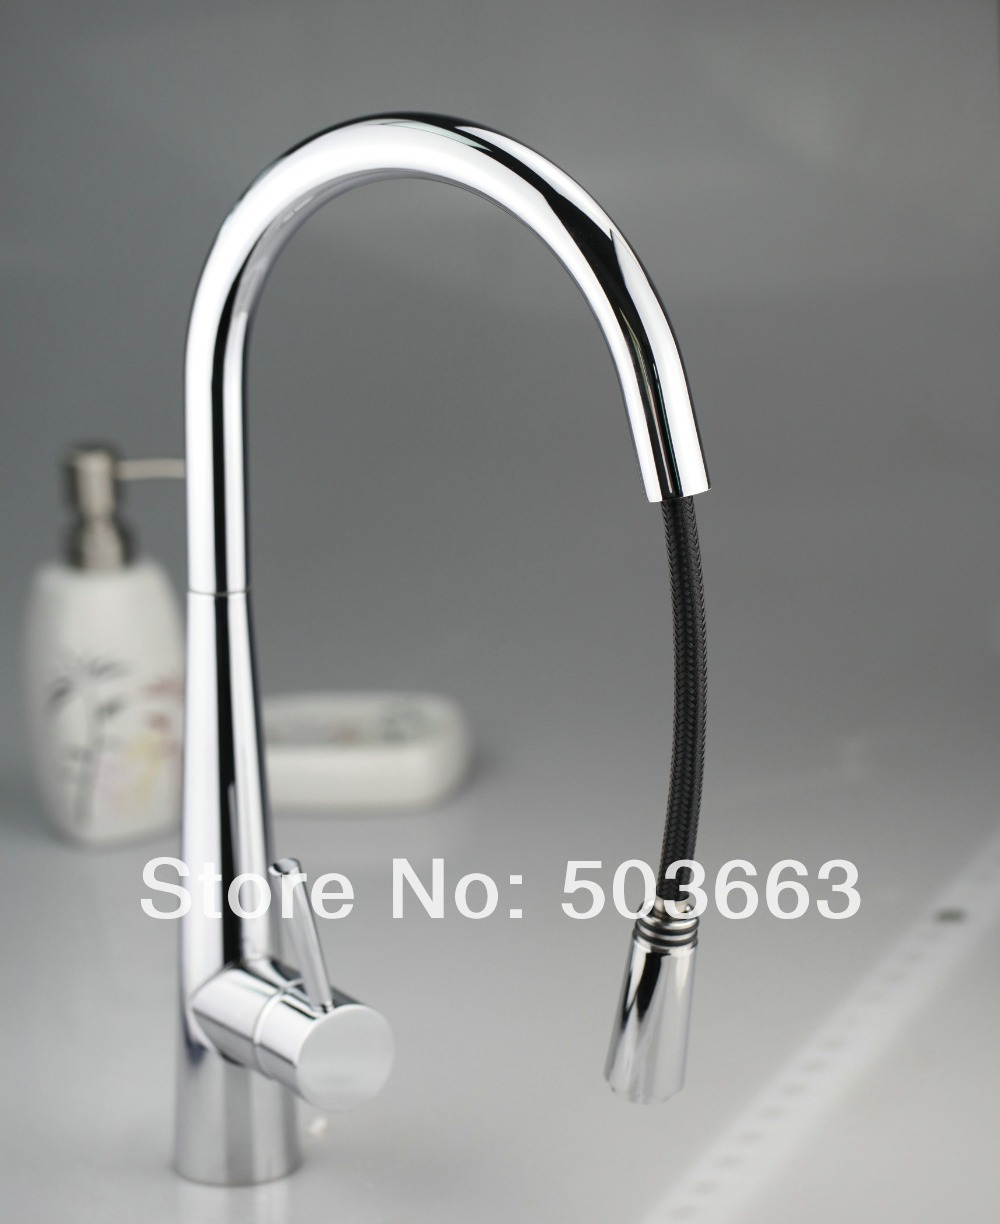 Best Price Chrome Brass Water Kitchen Faucet Swivel Spout Pull Out Vessel Sink Single Handle Deck Mounted Mixer Tap MF-375 polished chrome deck mounted bathroom kitchen faucet tap single handle with brass soap dispenser